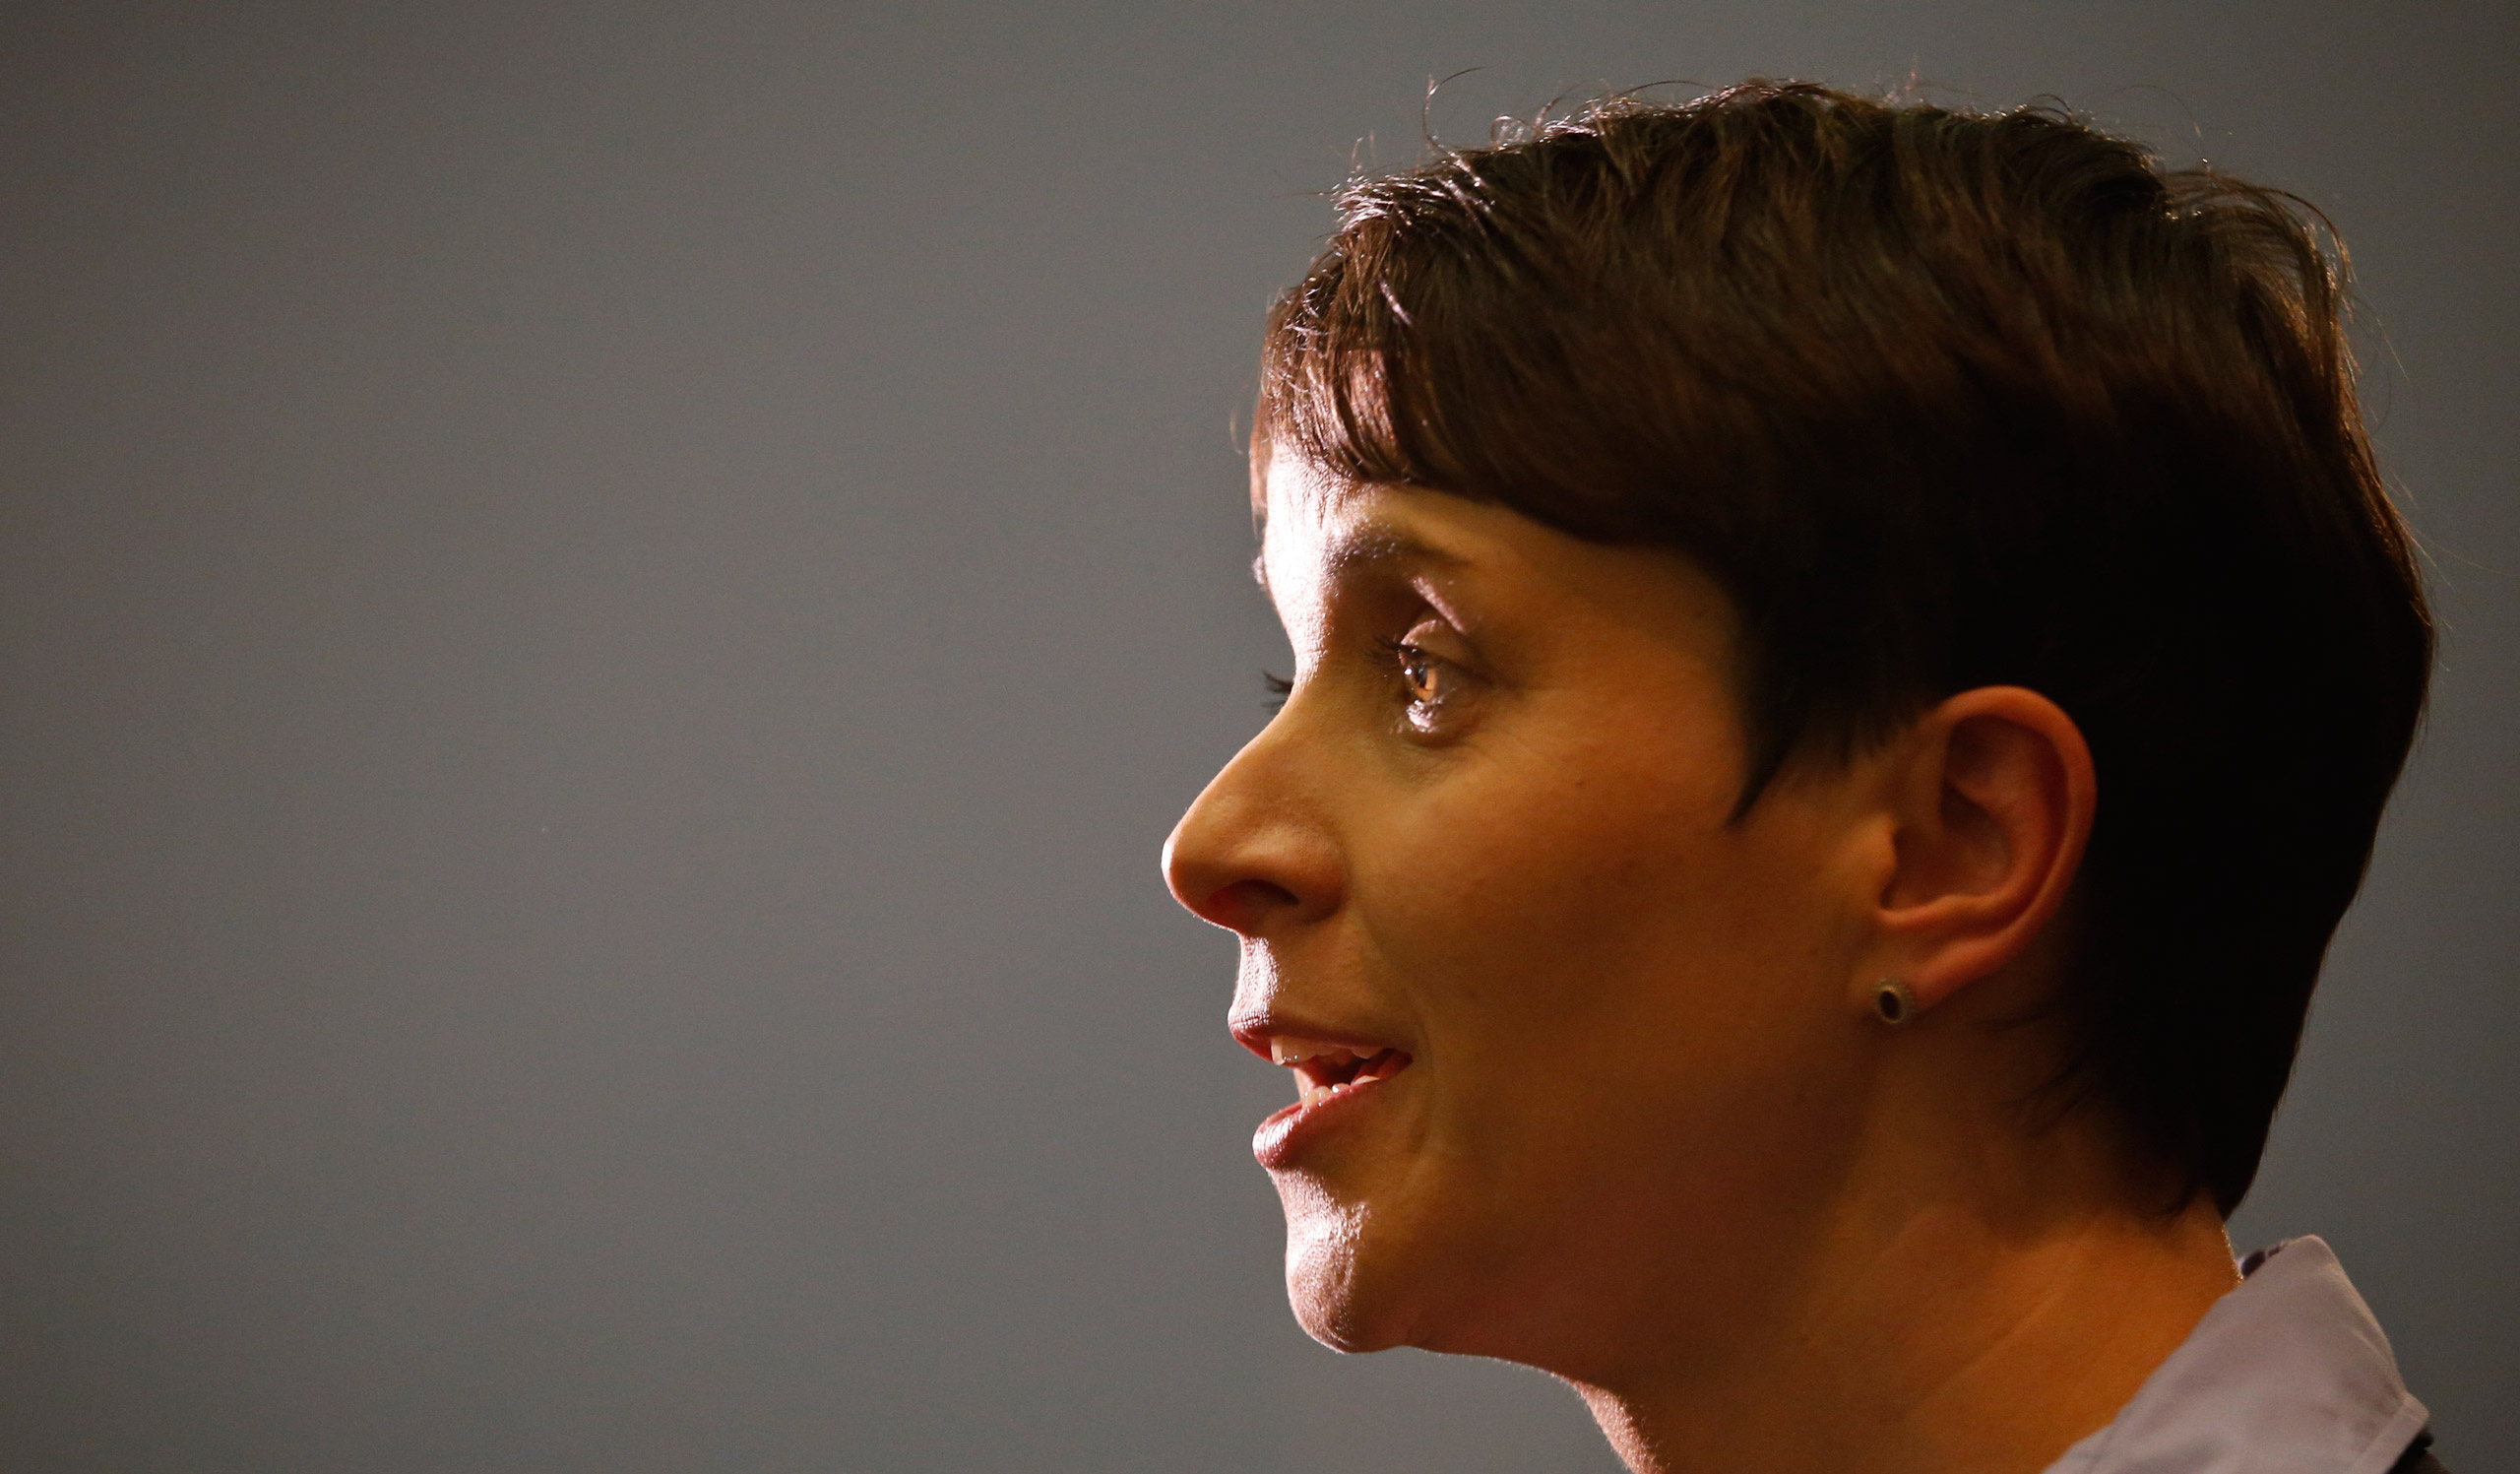 Frauke Petry, chairwoman of the anti-immigration party Alternative for Germany (AfD) talks to the media after first exit polls in three regional state elections in Berlin on March 13, 2016.